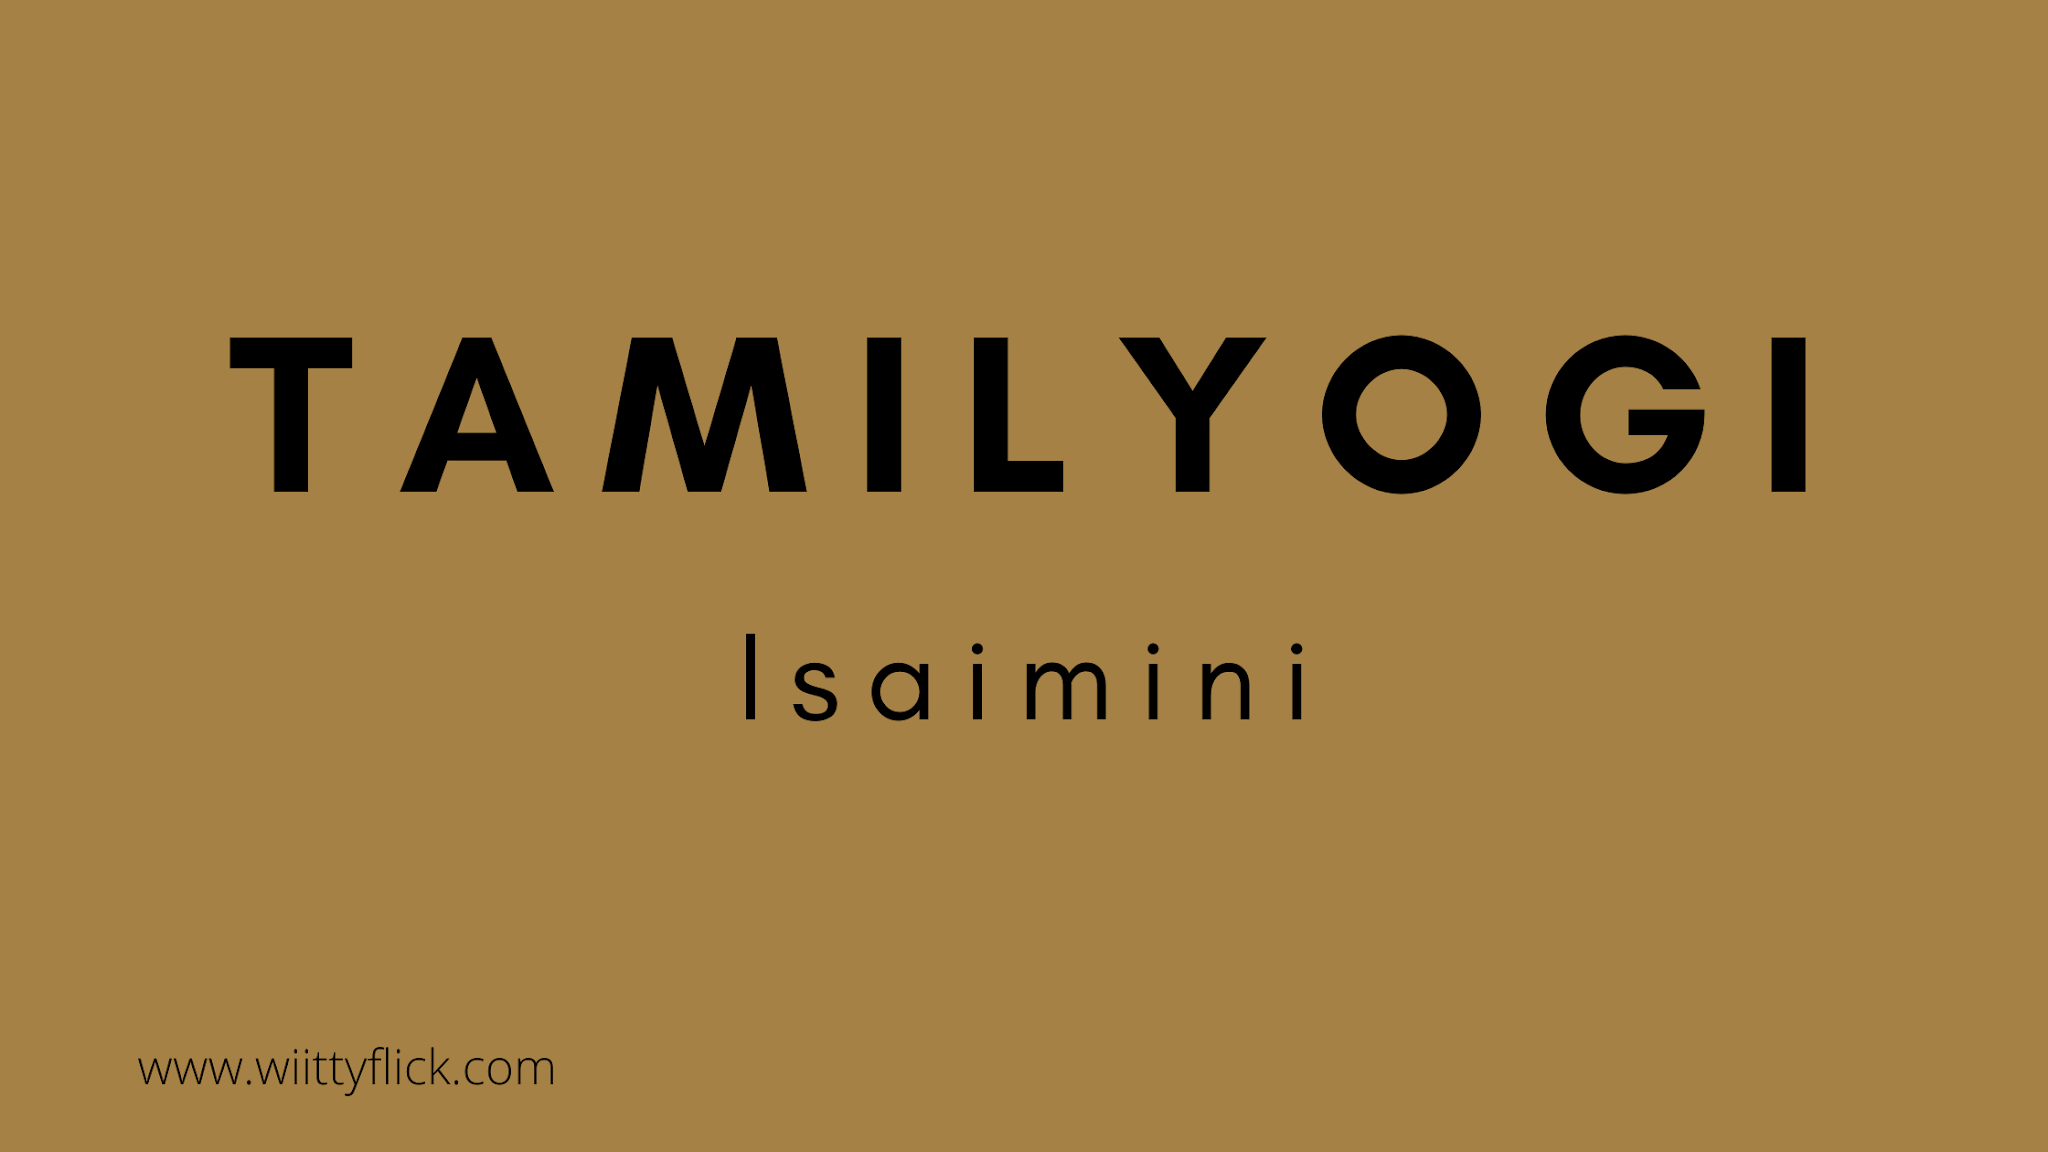 Tamilyogi 2021 - Tamilyogi Live Link Illegal Website, Tamilyogi Isaimini, Tamilyogi Vip, Tamil Movies, Telugu Movie, South Indian Movies Download,  Unblock News About Tamilyogi 2020